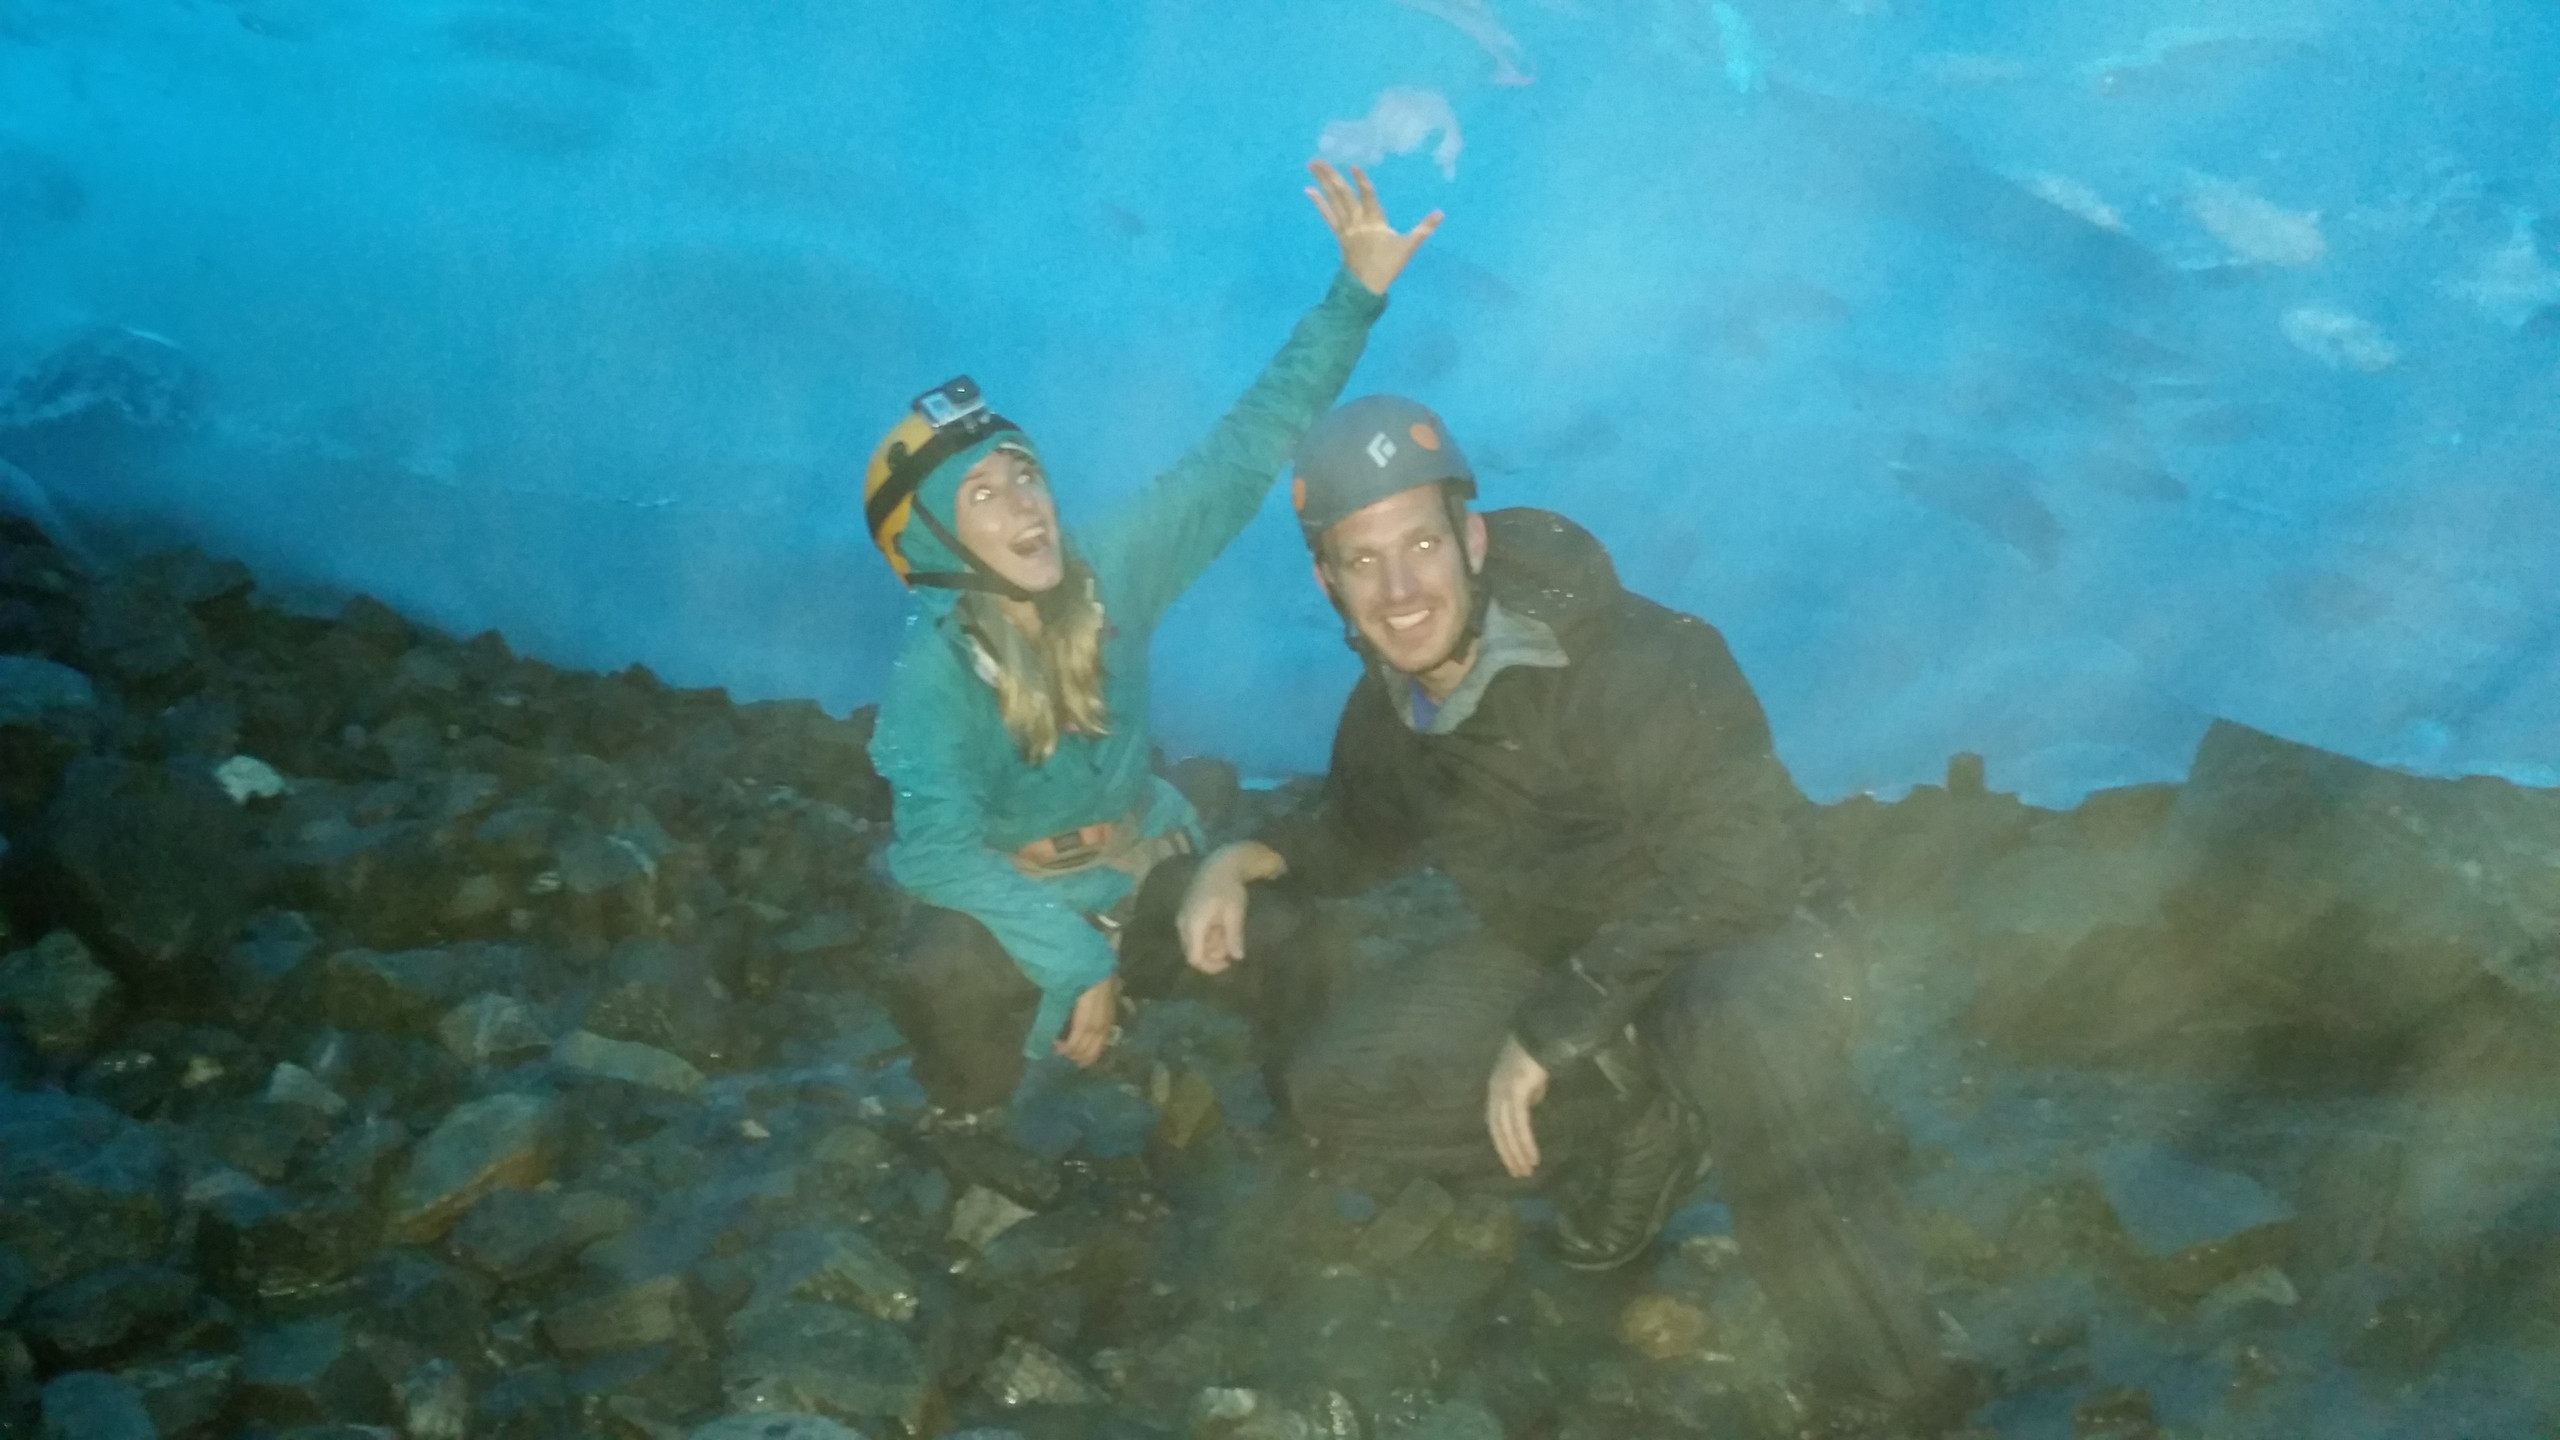 touching the ice cave!